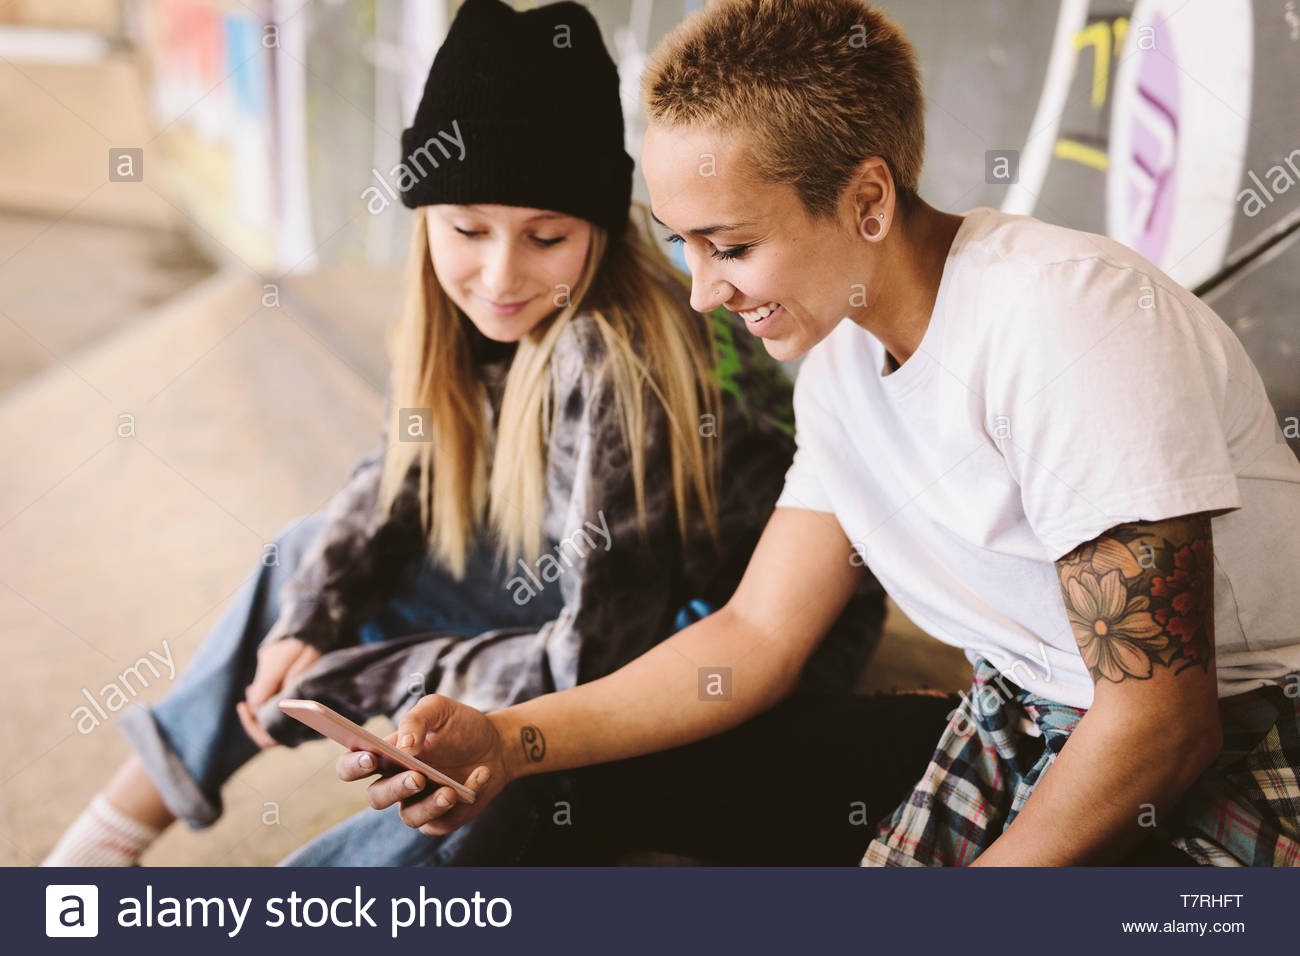 Young female skateboarders using smart phone at indoor skate park - Stock Image